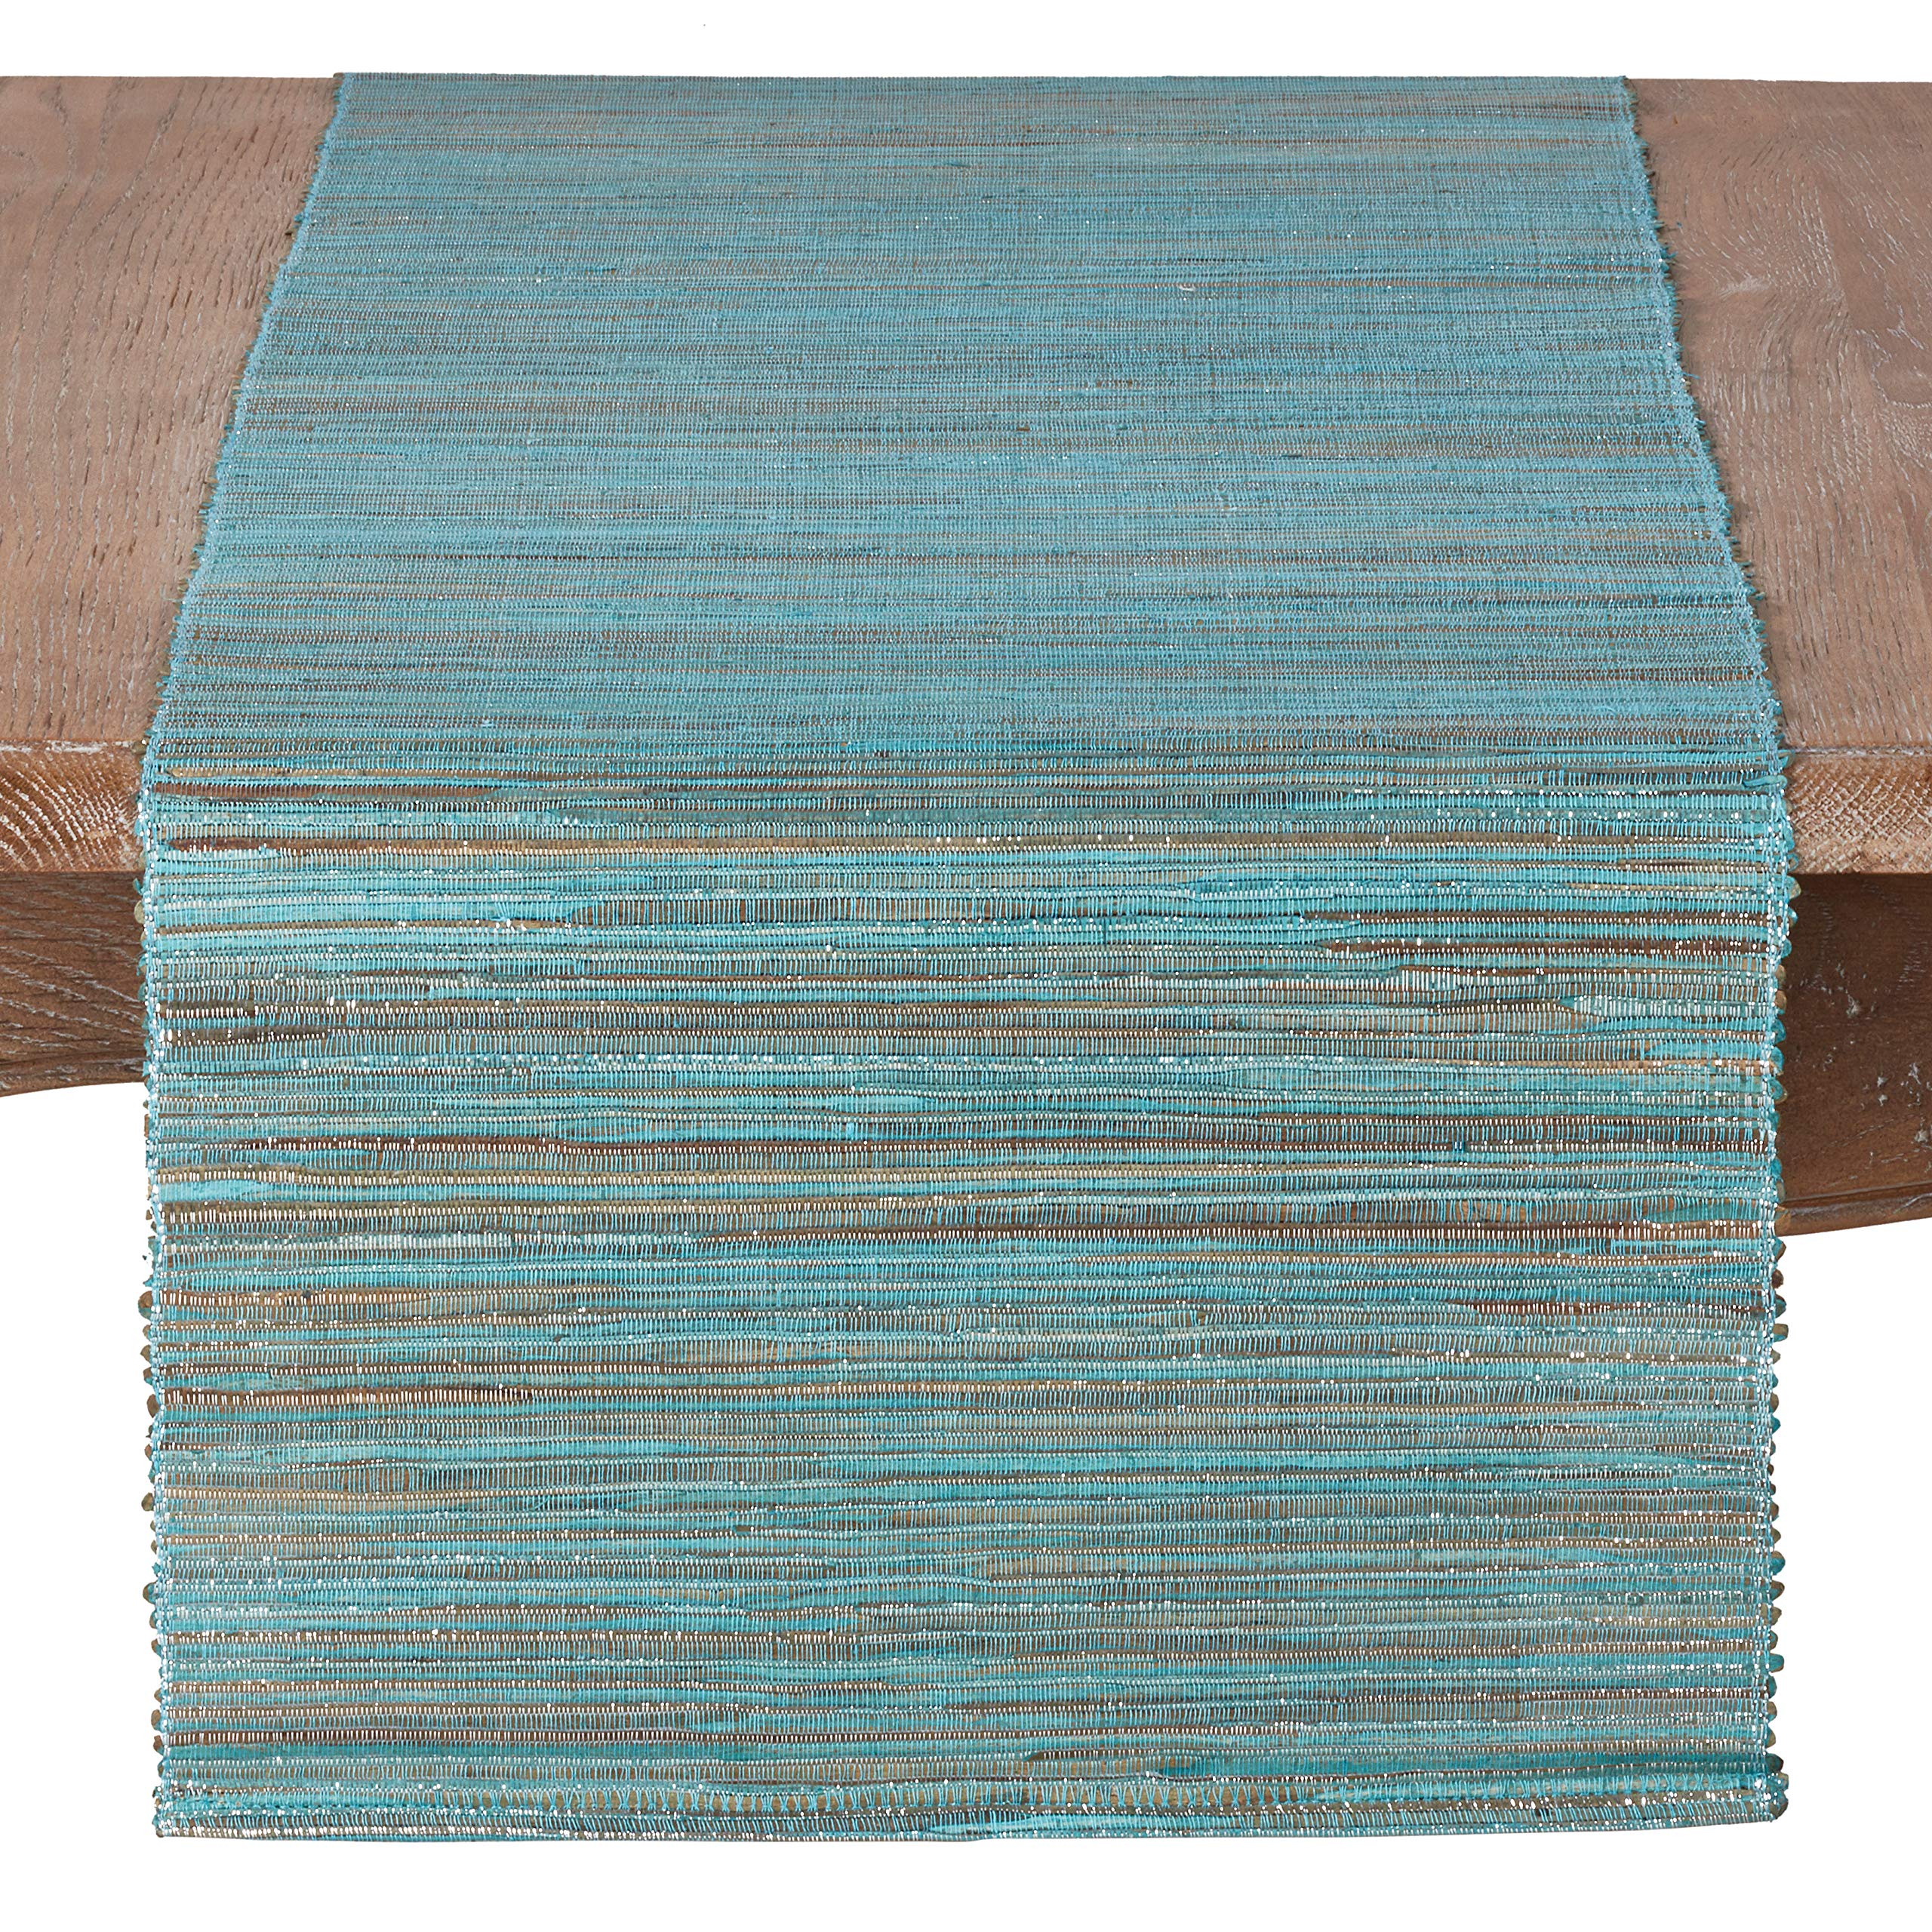 SARO LIFESTYLE 217.TQ14108B Melaya Collection Shimmering Woven Nubby Water Hyacinth Table Runner, 14'' x 108'', Turquoise by SARO LIFESTYLE